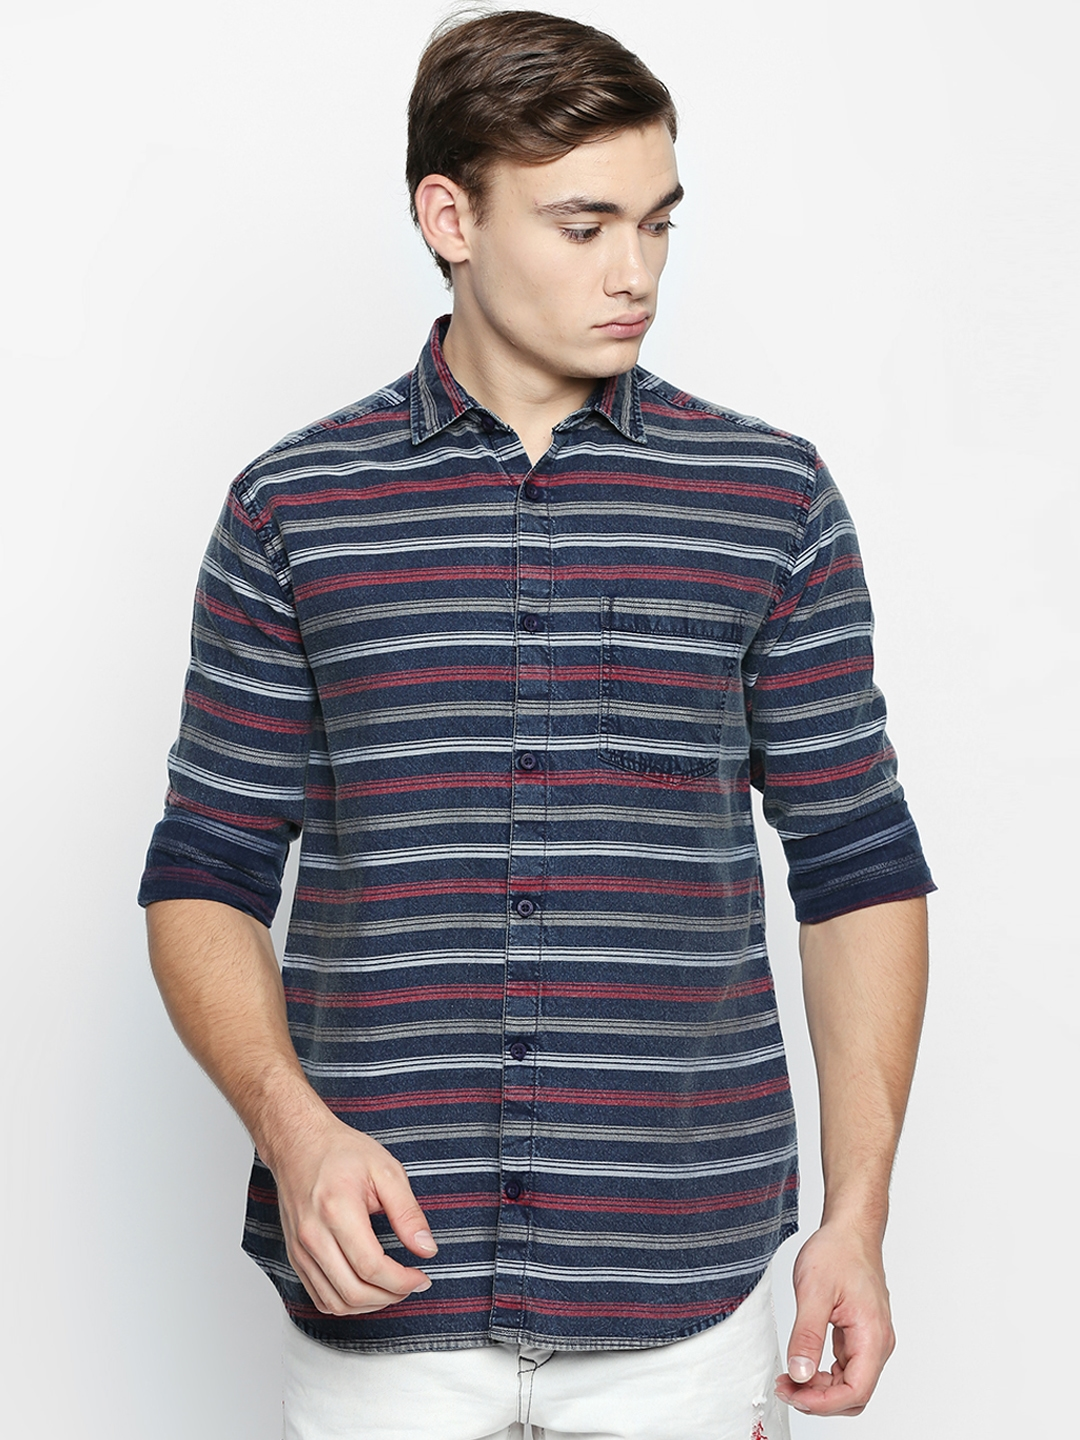 a831f2ce5 Buy Disrupt Men Navy Blue & Red Regular Fit Striped Casual Shirt ...